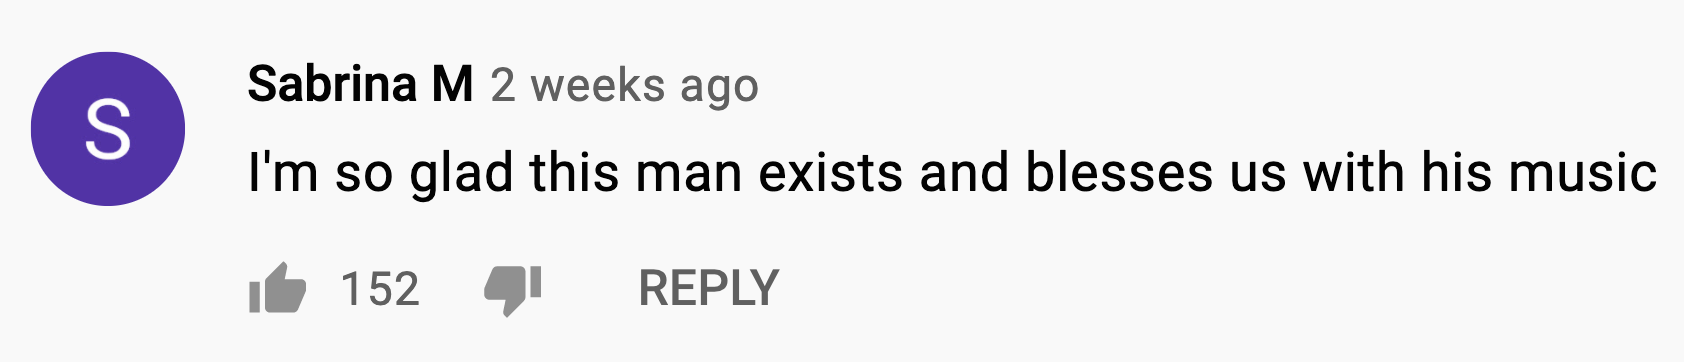 KAMAUU Youtube Comment: I'm so glad this man exists and blesses us with his music